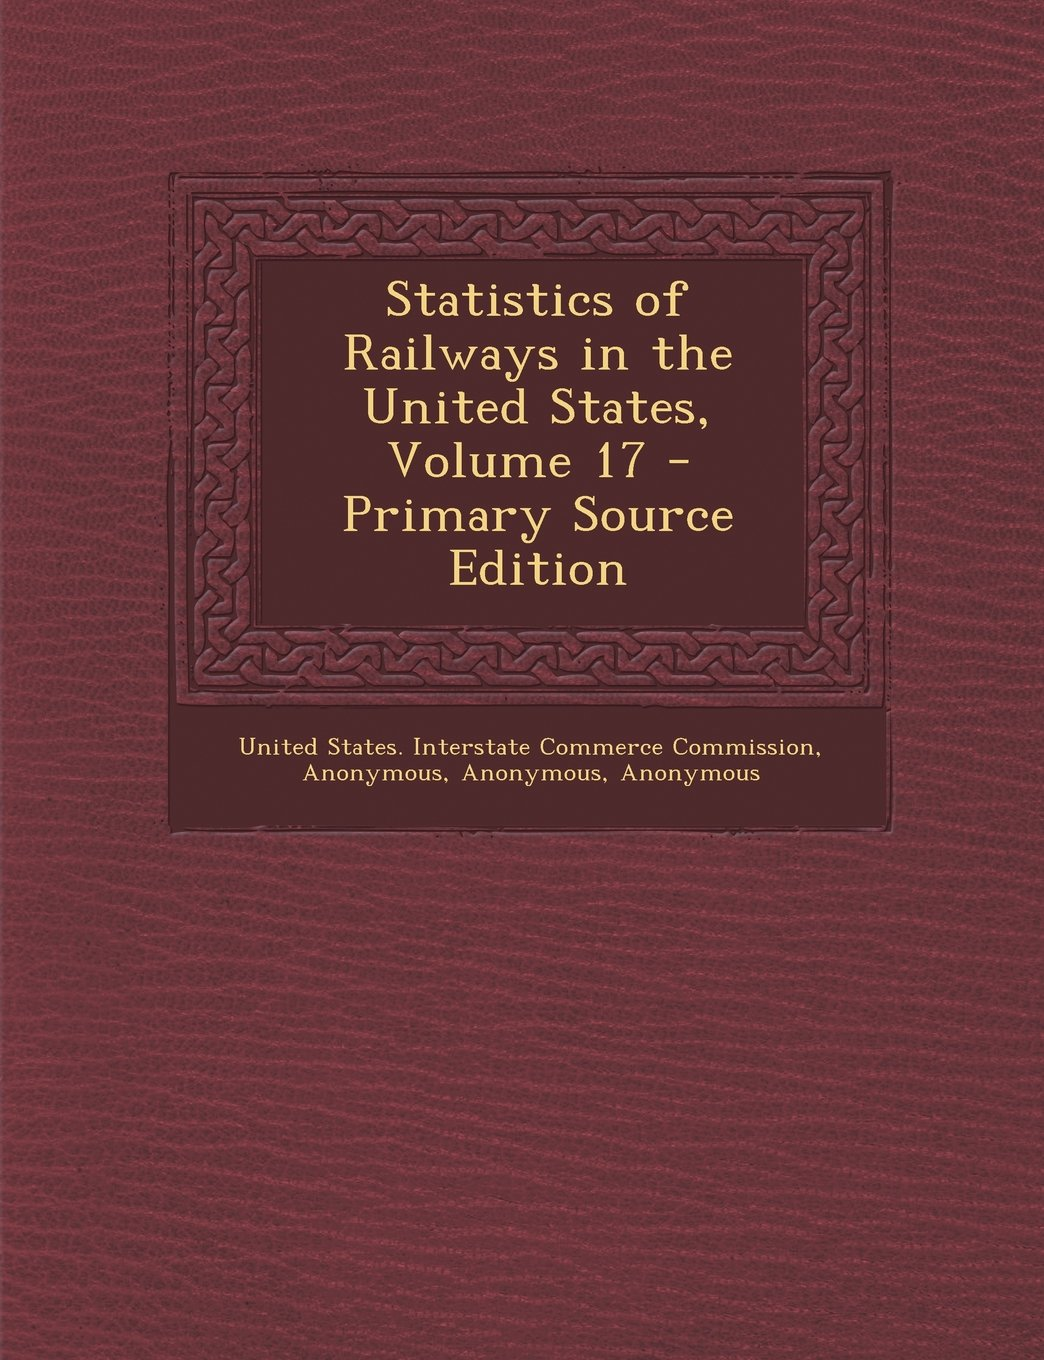 Statistics of Railways in the United States, Volume 17 - Primary Source Edition pdf